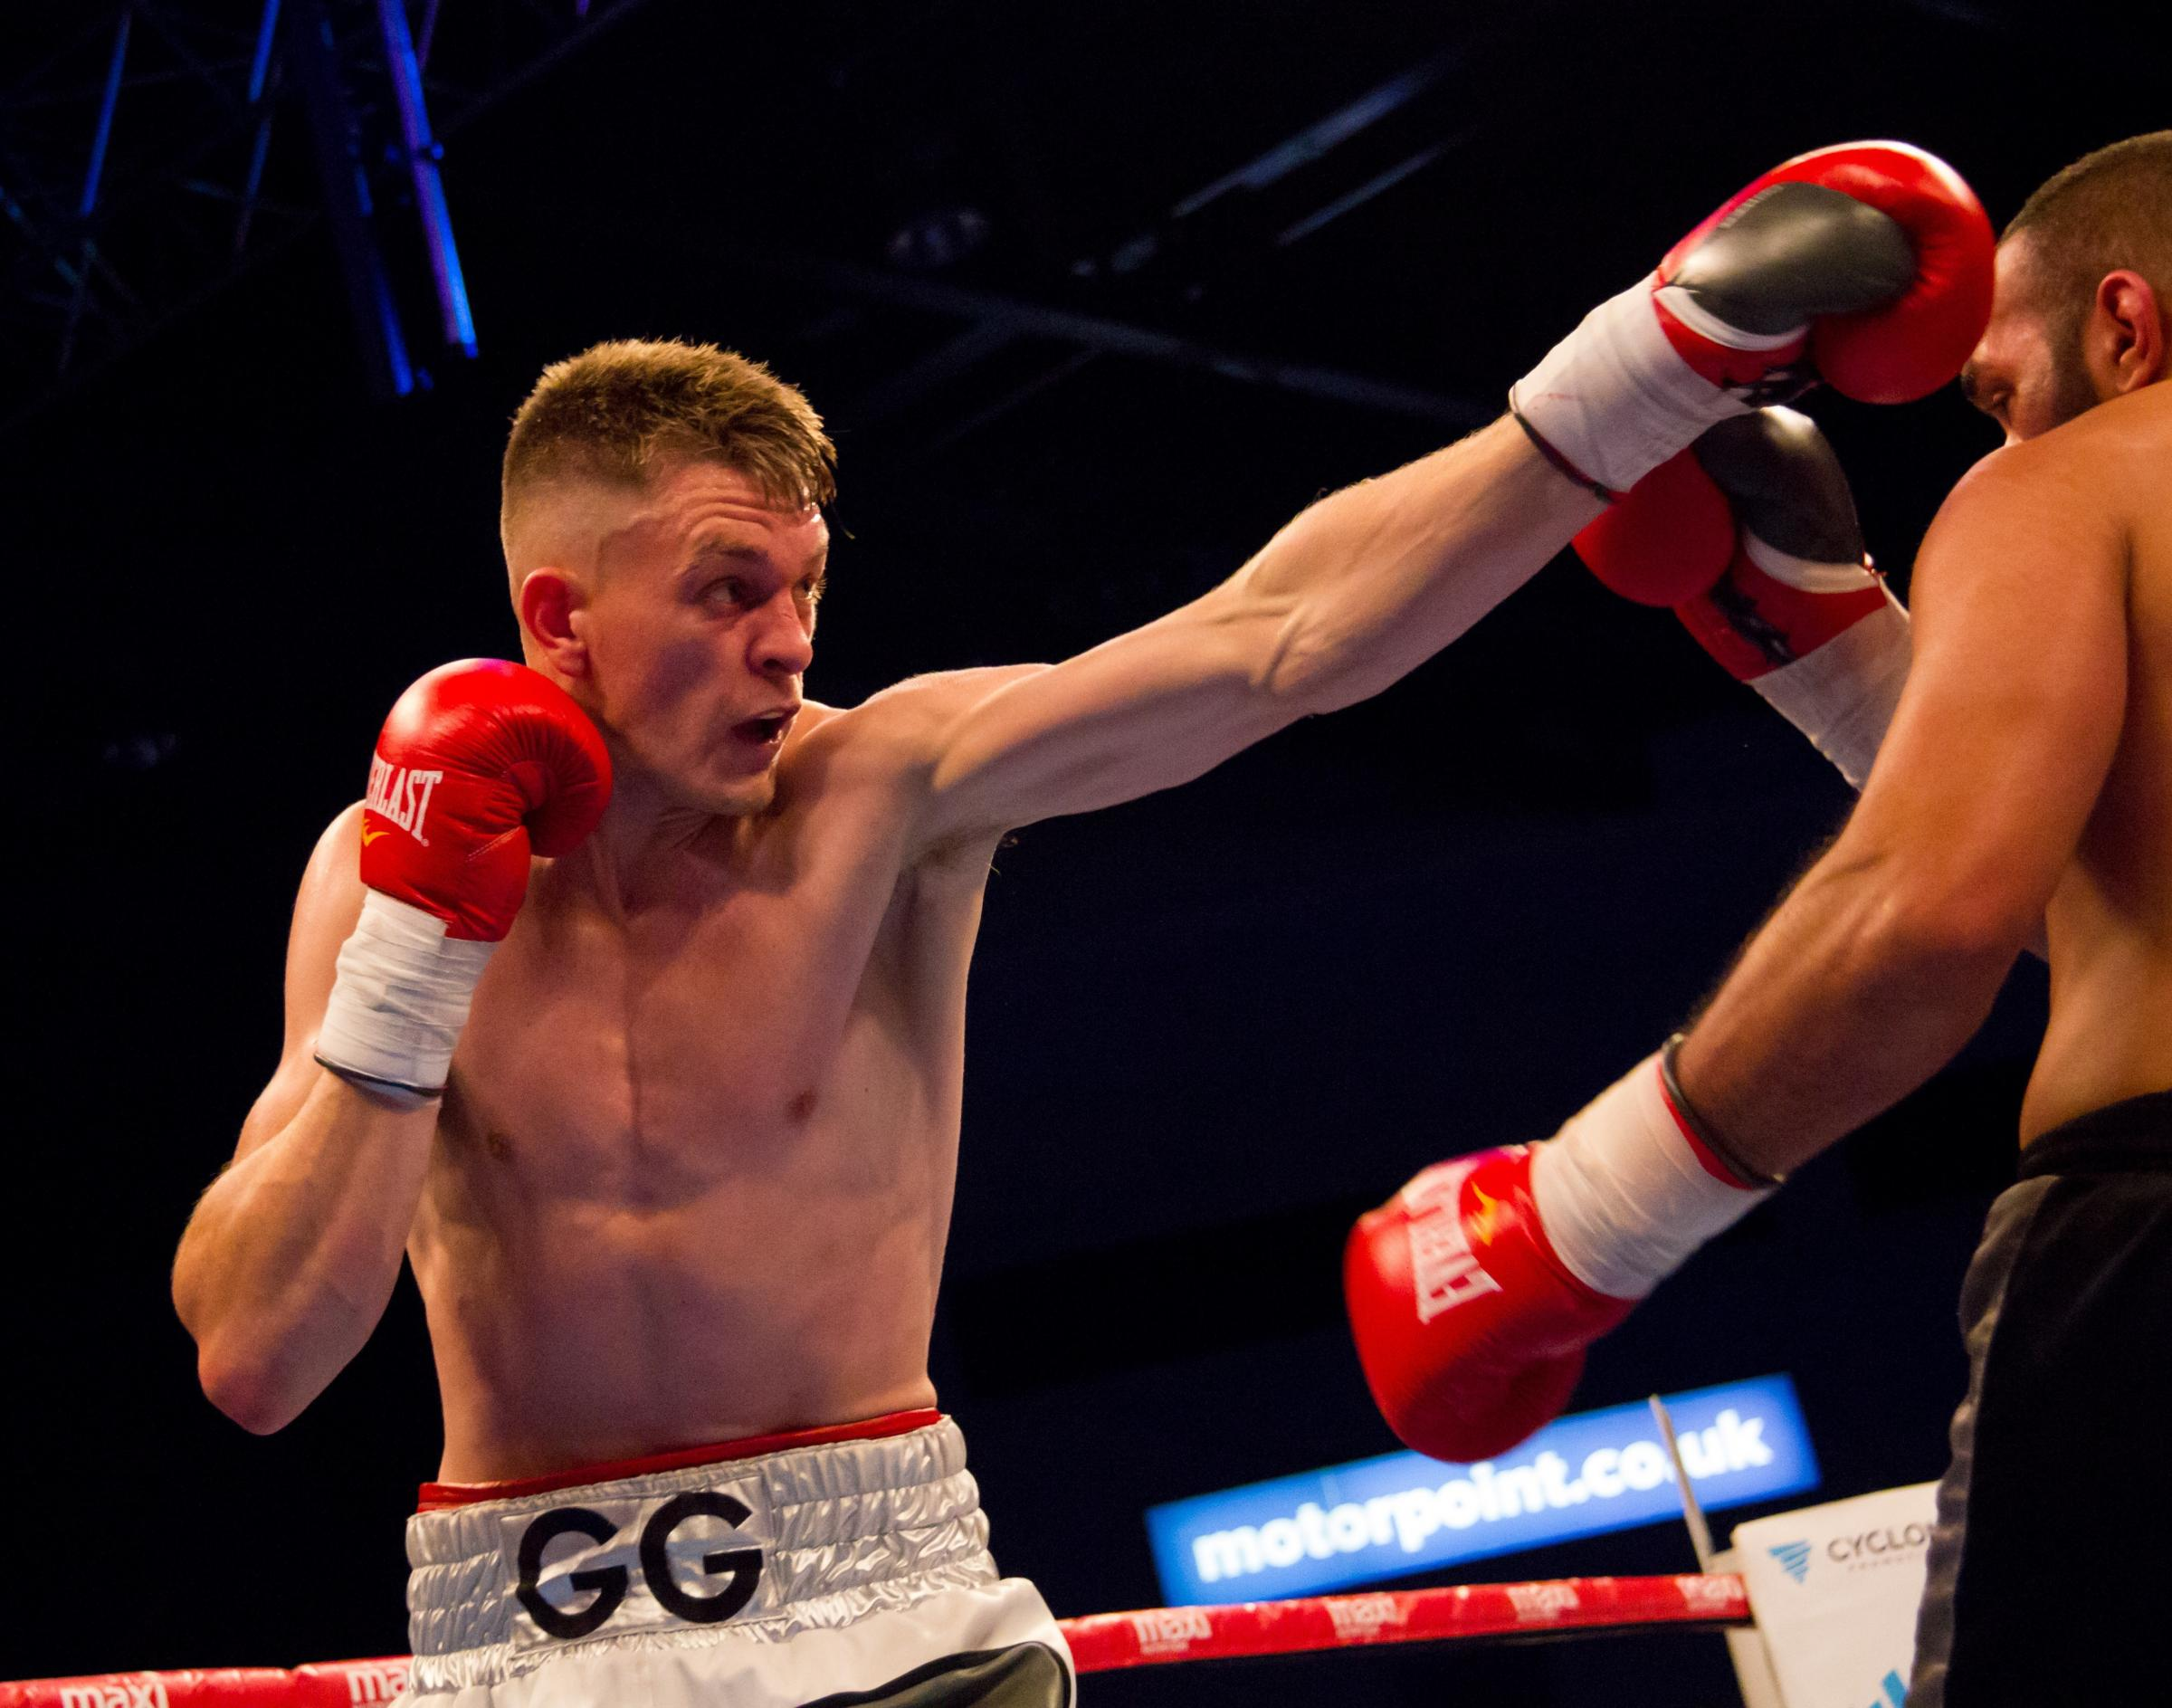 ON TITLE TRAIL: St Joseph's fighter Gavin Gwynne on his way to victory over Ibrar Riyaz. Picture: liamhartery.com